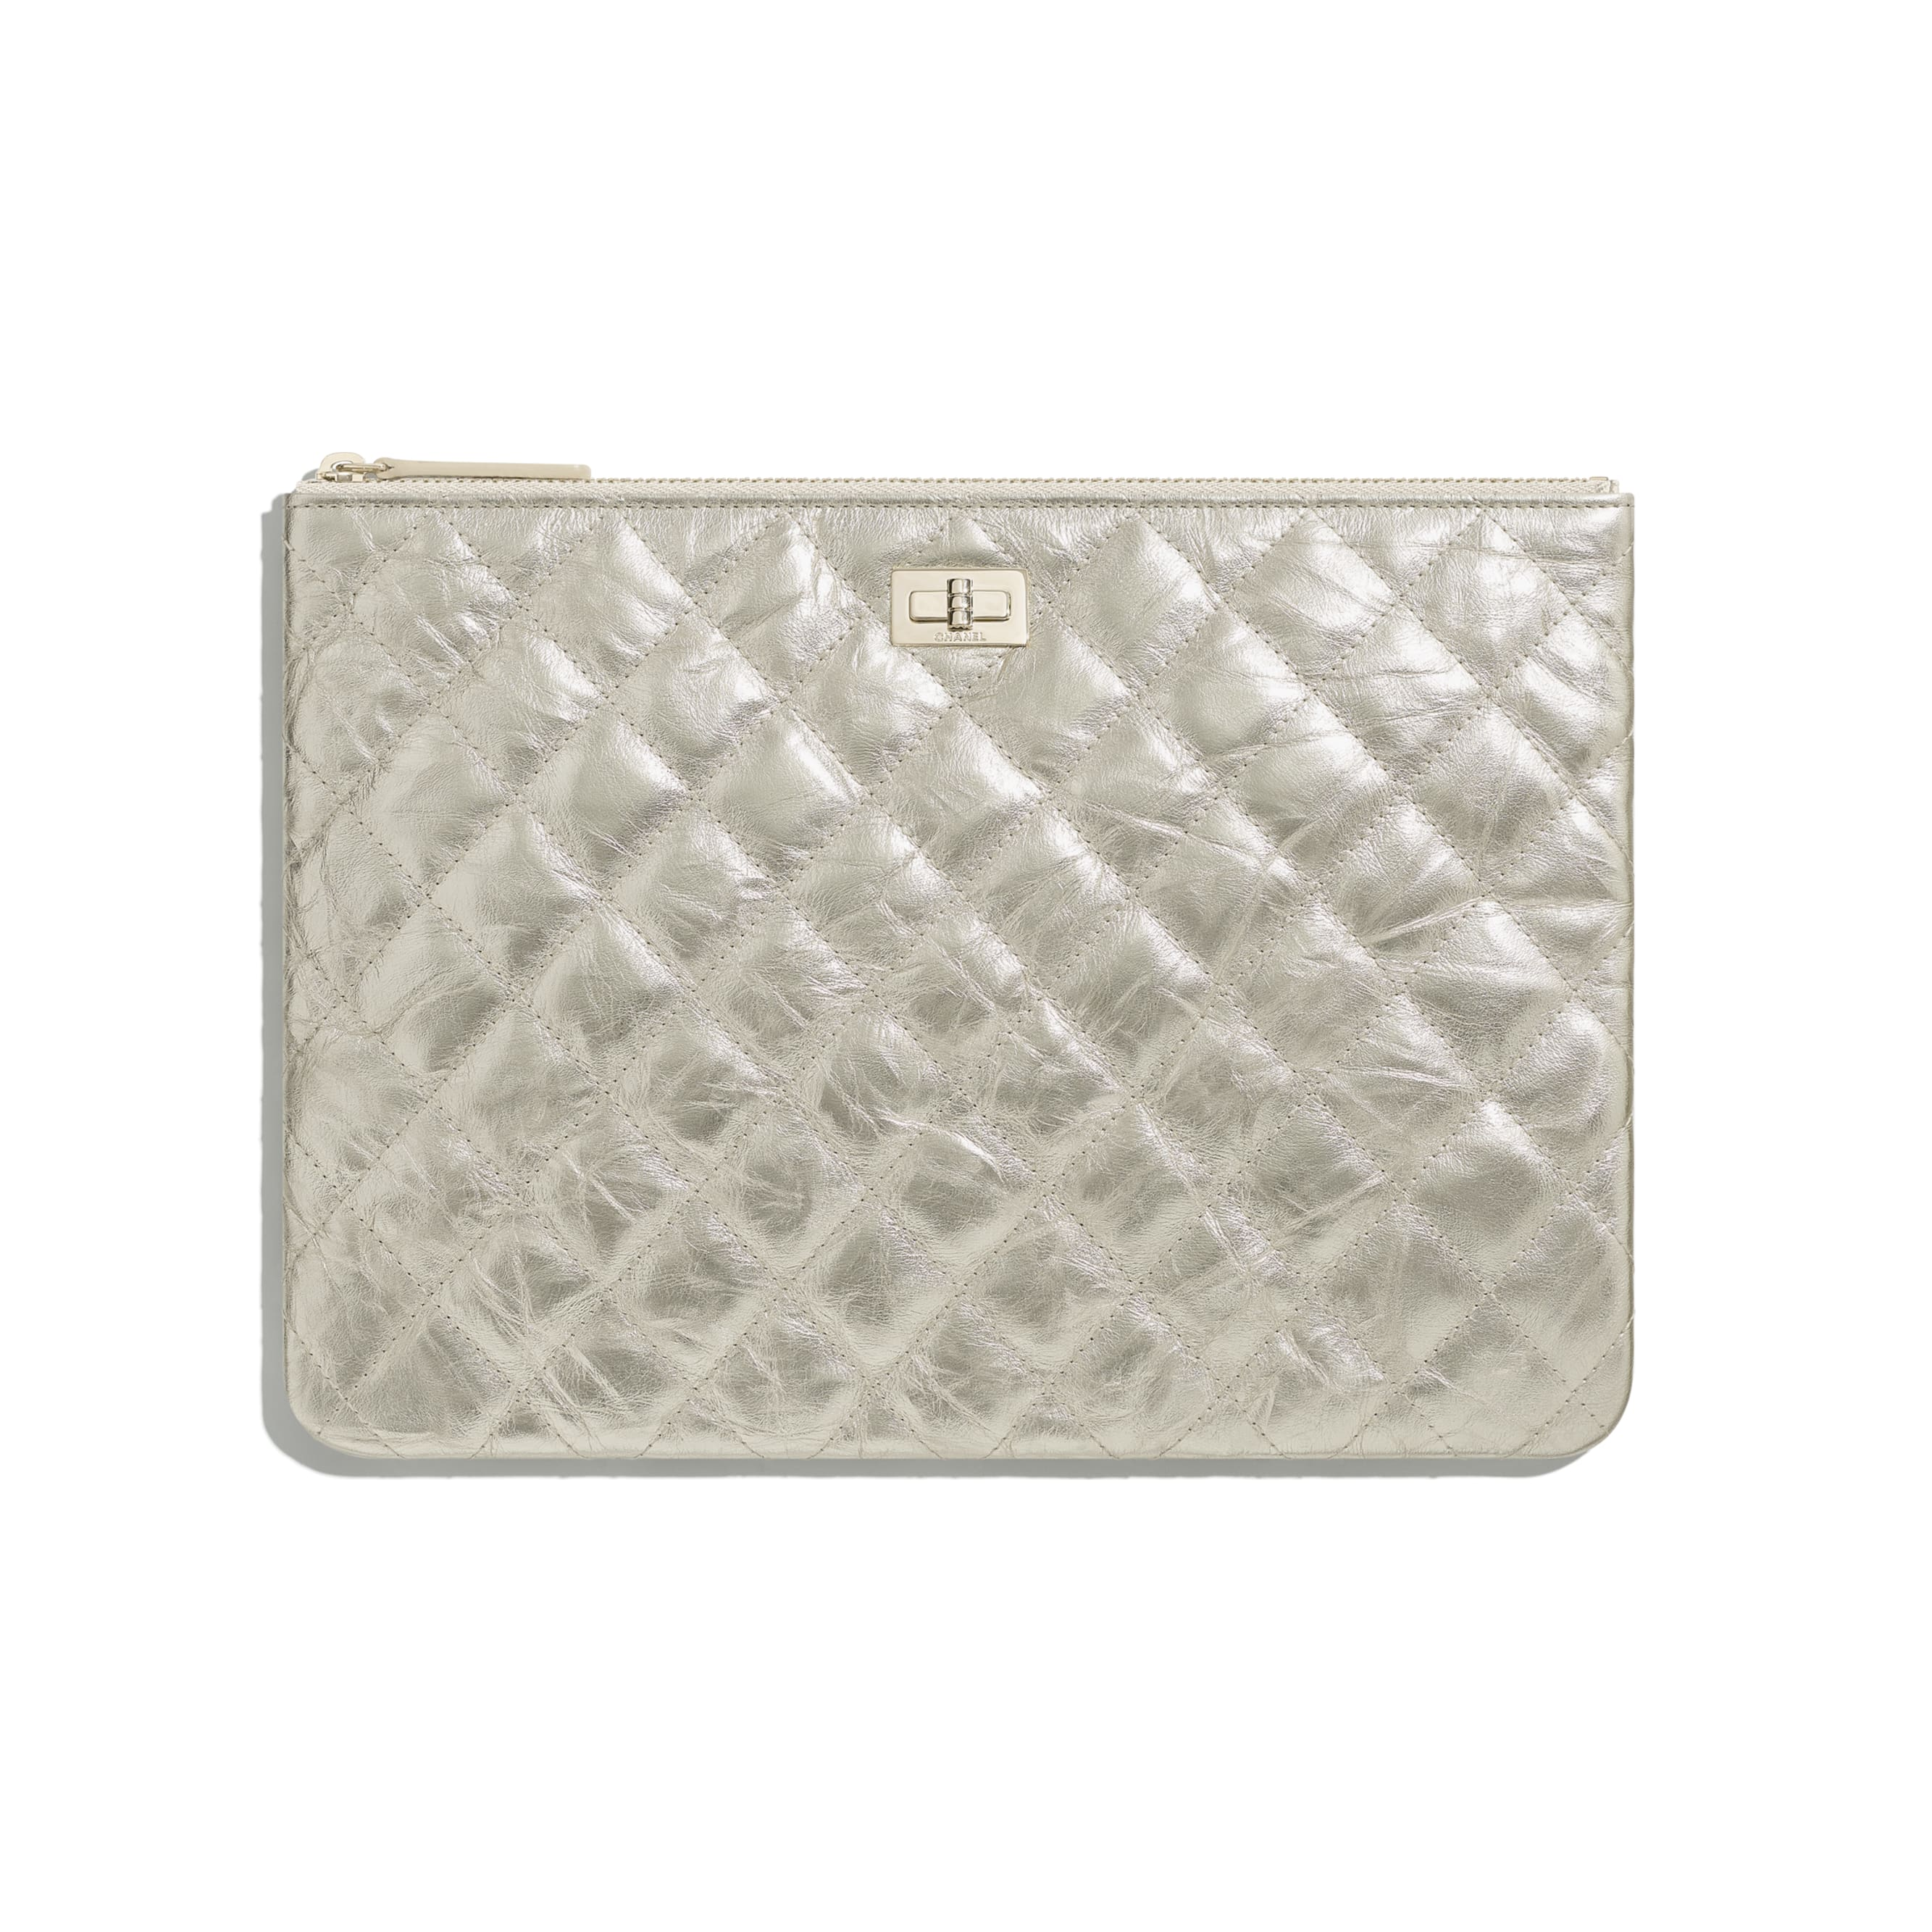 2.55 Pouch - Light Gold - Metallic Crumpled Calfskin & Gold-Tone Metal - CHANEL - Default view - see standard sized version